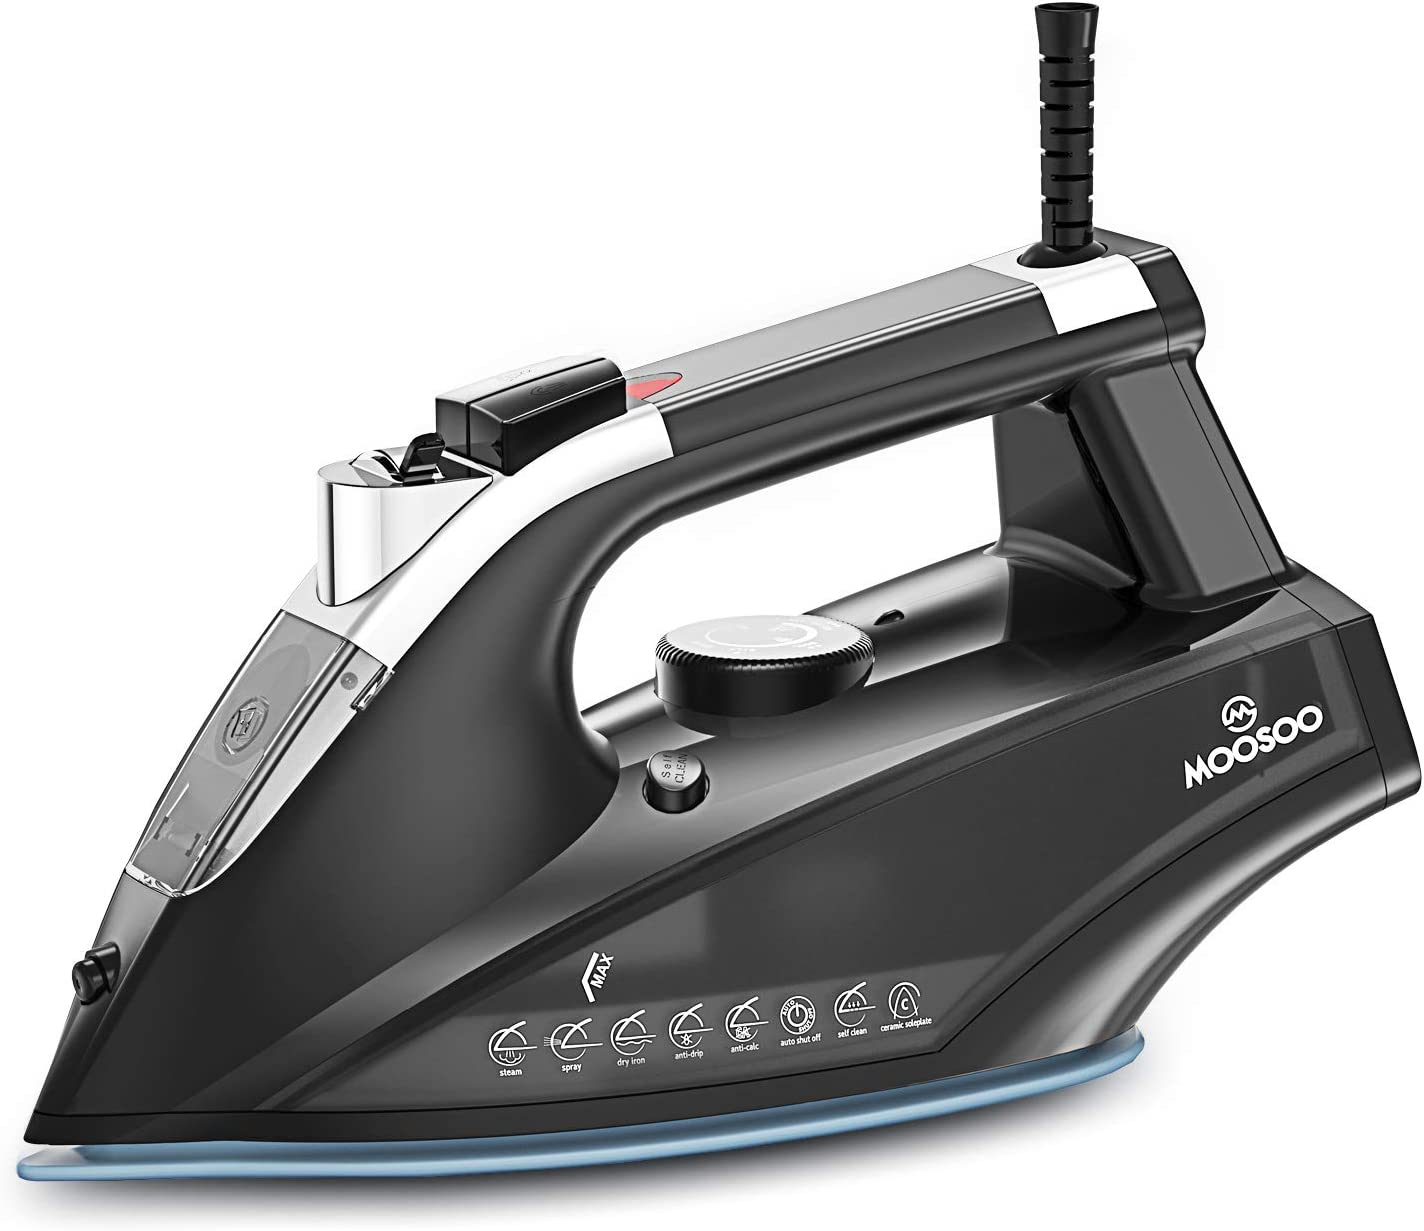 MOOSOO Steam Iron 1800W, Small Lightweight Portable Steam-Dry Iron for Clothes, Non-Stick Soleplate Home Steam Iron, Anti-drip Iron with Auto-Off, Steam Control System, 470mL Water Tank